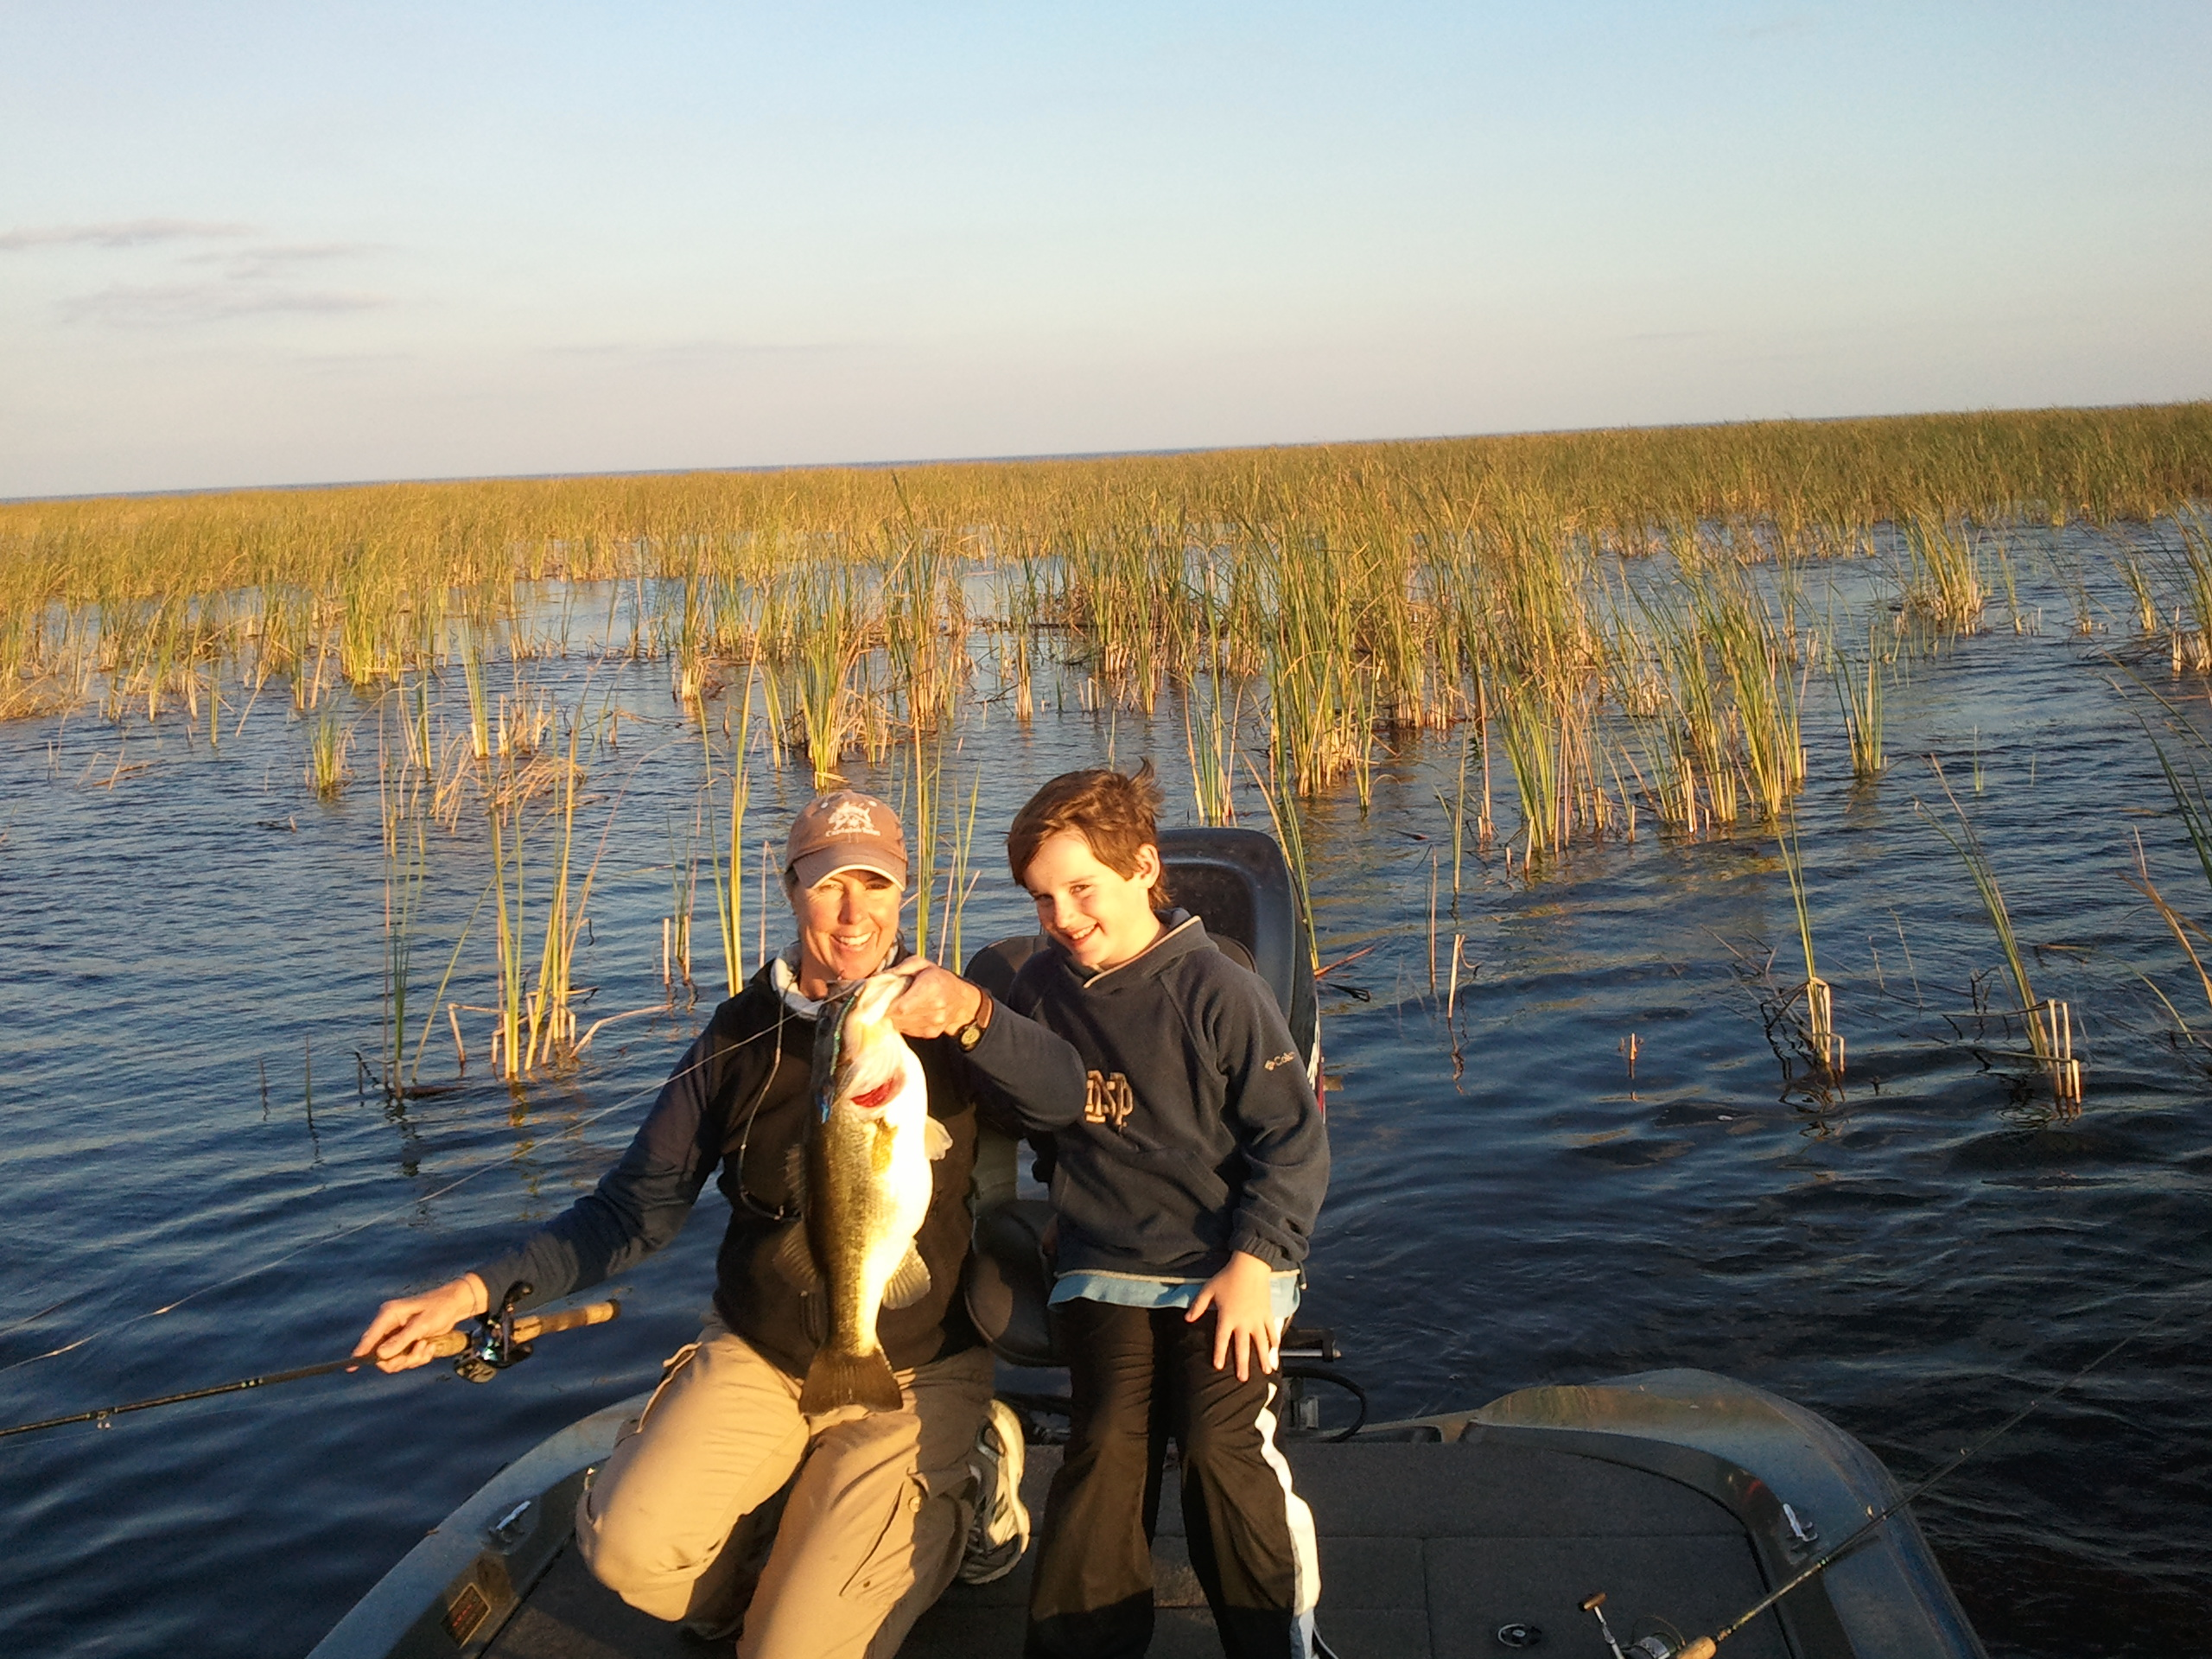 Okeechobee fishing guides stay hot lake okeechobee bass for Lake okeechobee fishing guides